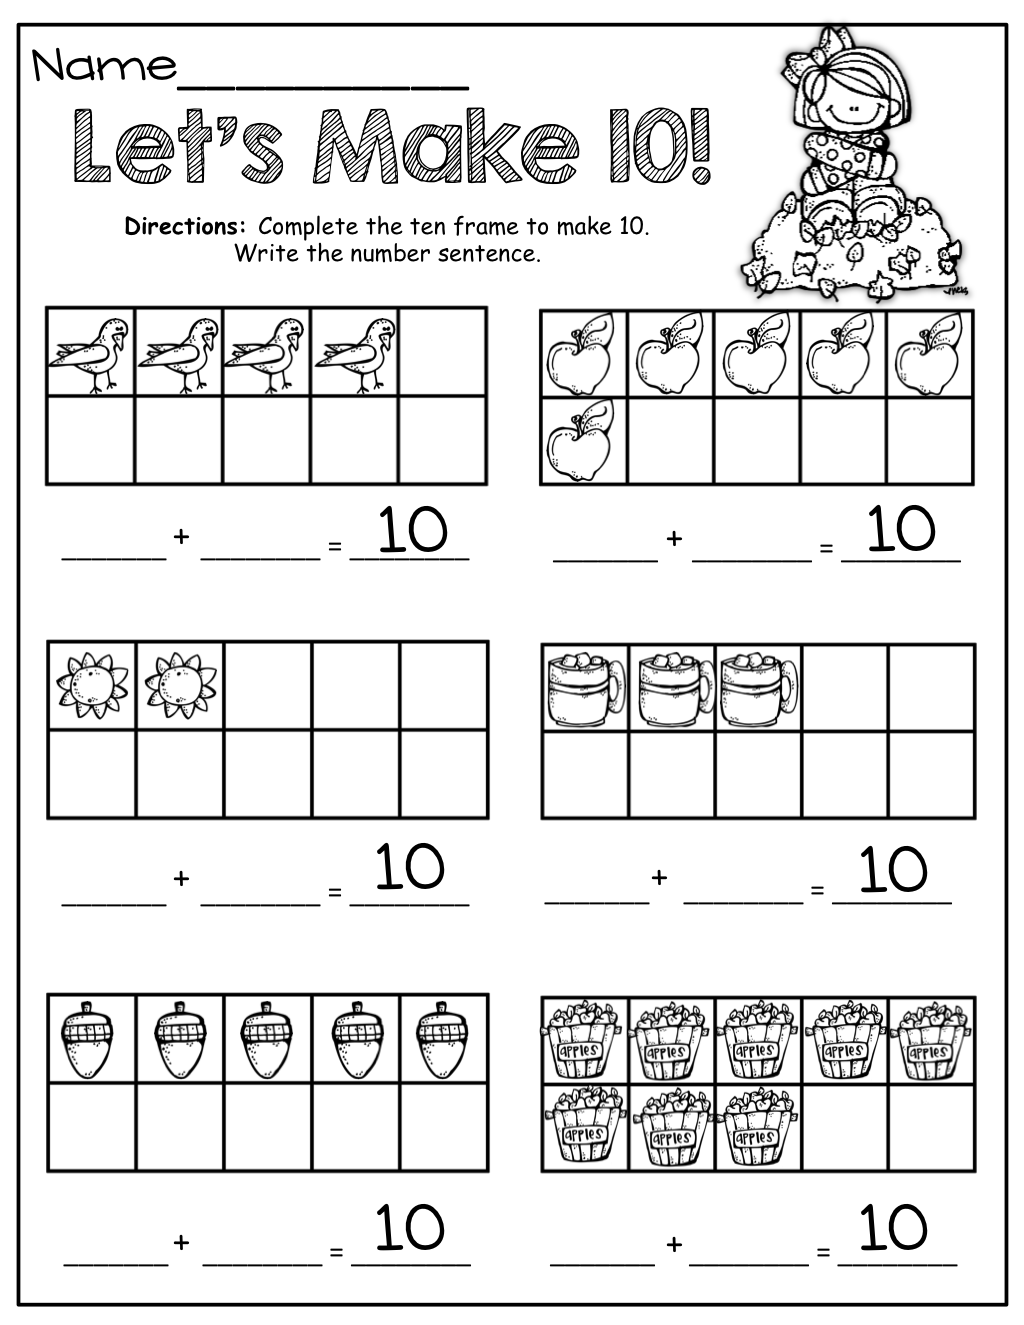 Making 10 with Fall 10 Frames | Math | Pinterest | Mathe, Zahlen ...